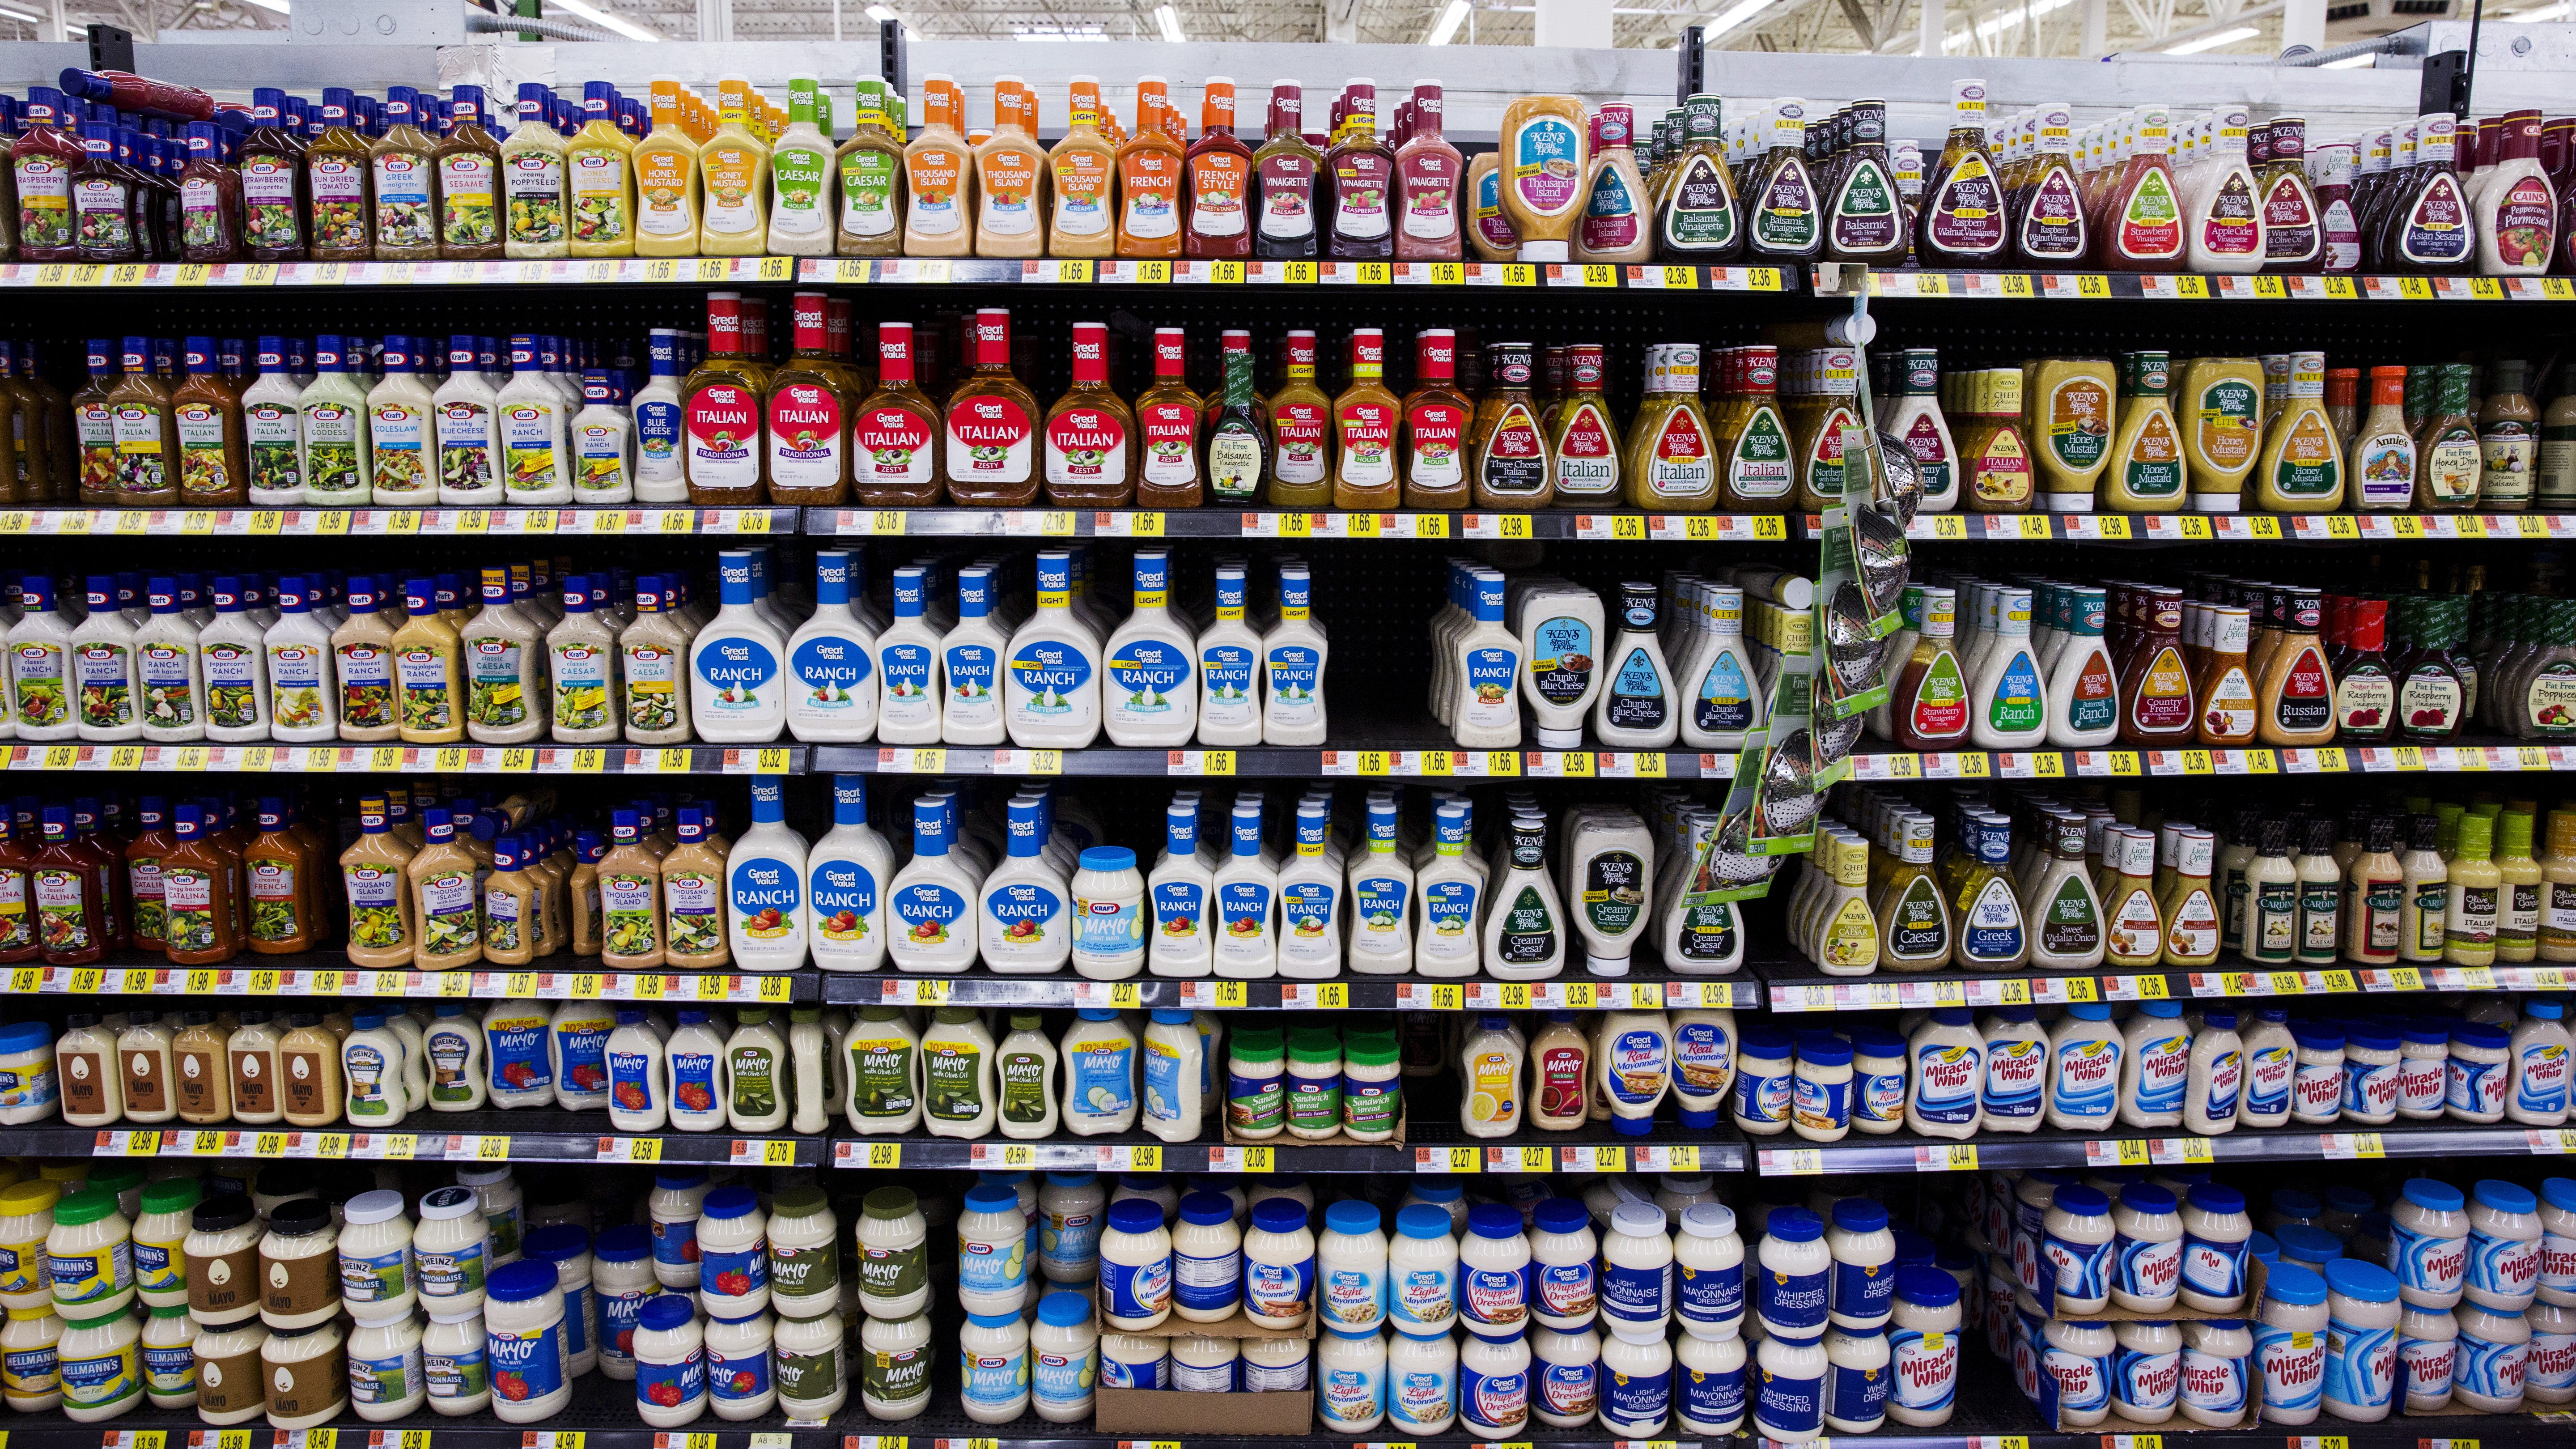 Salad dressings are displayed at a Walmart store in Secaucus, New Jersey, November 11, 2015.